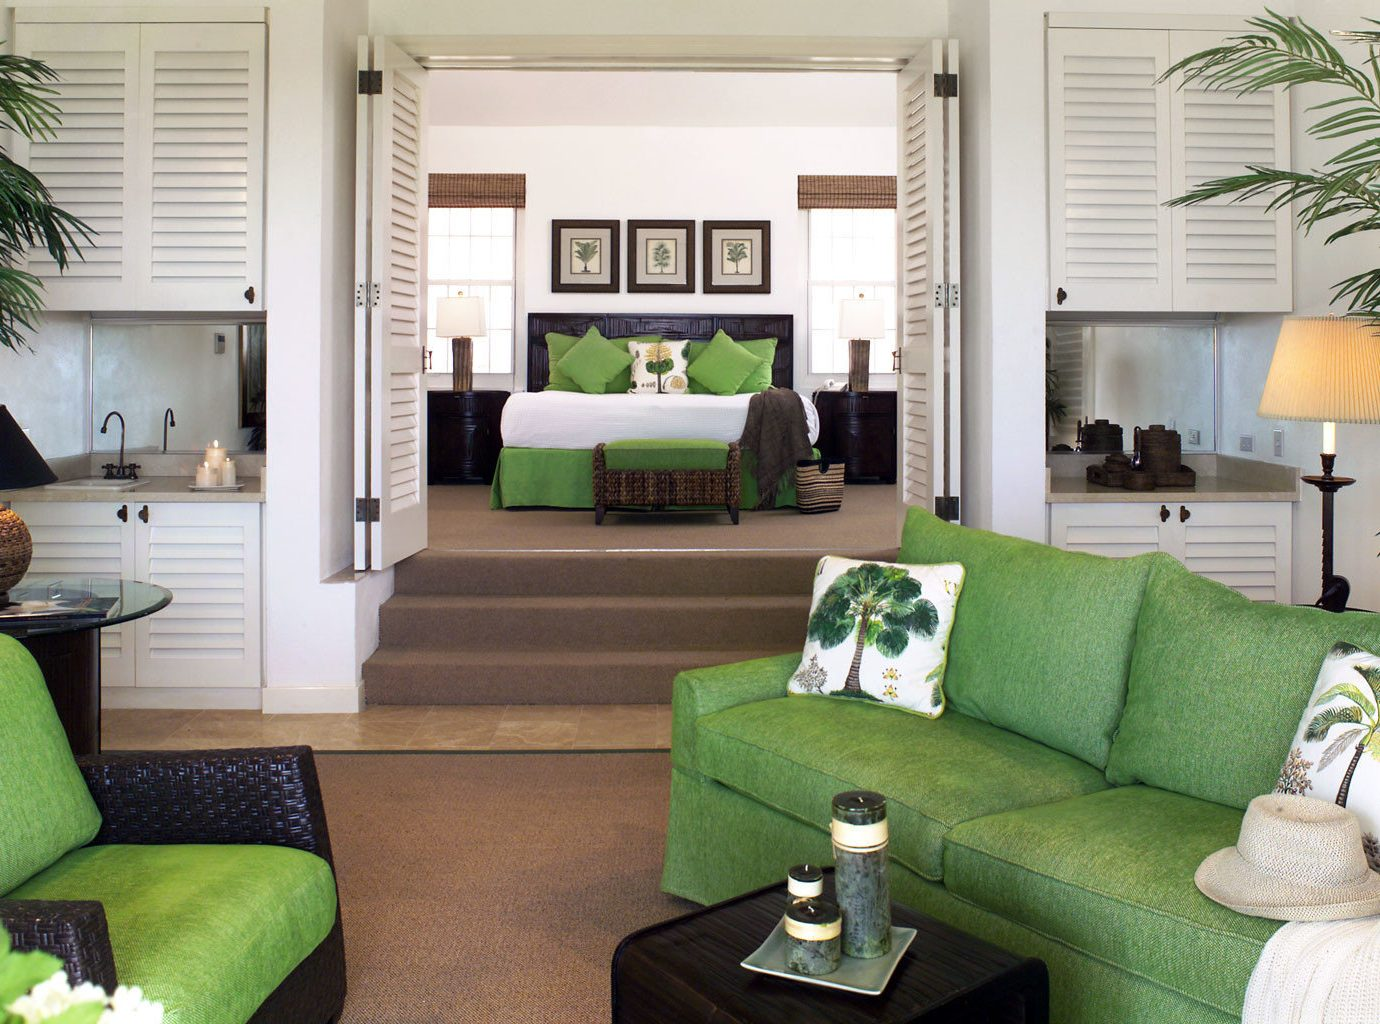 Adult-only Beach Beachfront Bedroom Honeymoon Hotels Living Lounge Romance Romantic Suite Tropical Waterfront green indoor window sofa room floor living room property furniture home condominium estate interior design real estate cottage Villa pillow area decorated leather Modern arranged